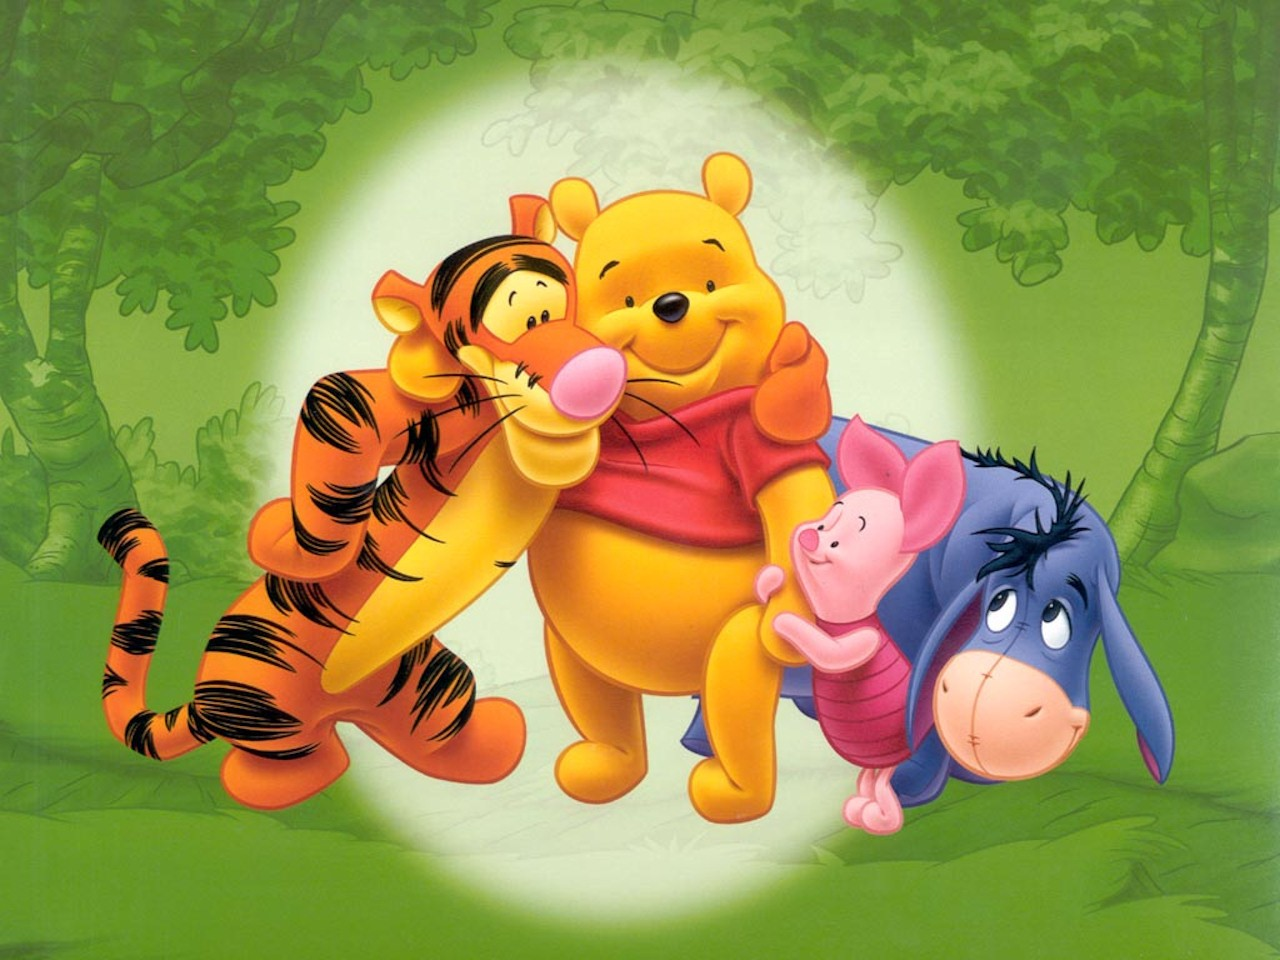 Winnie The Pooh Forest Background: Pooh, Tigger And Eeyore In Forest